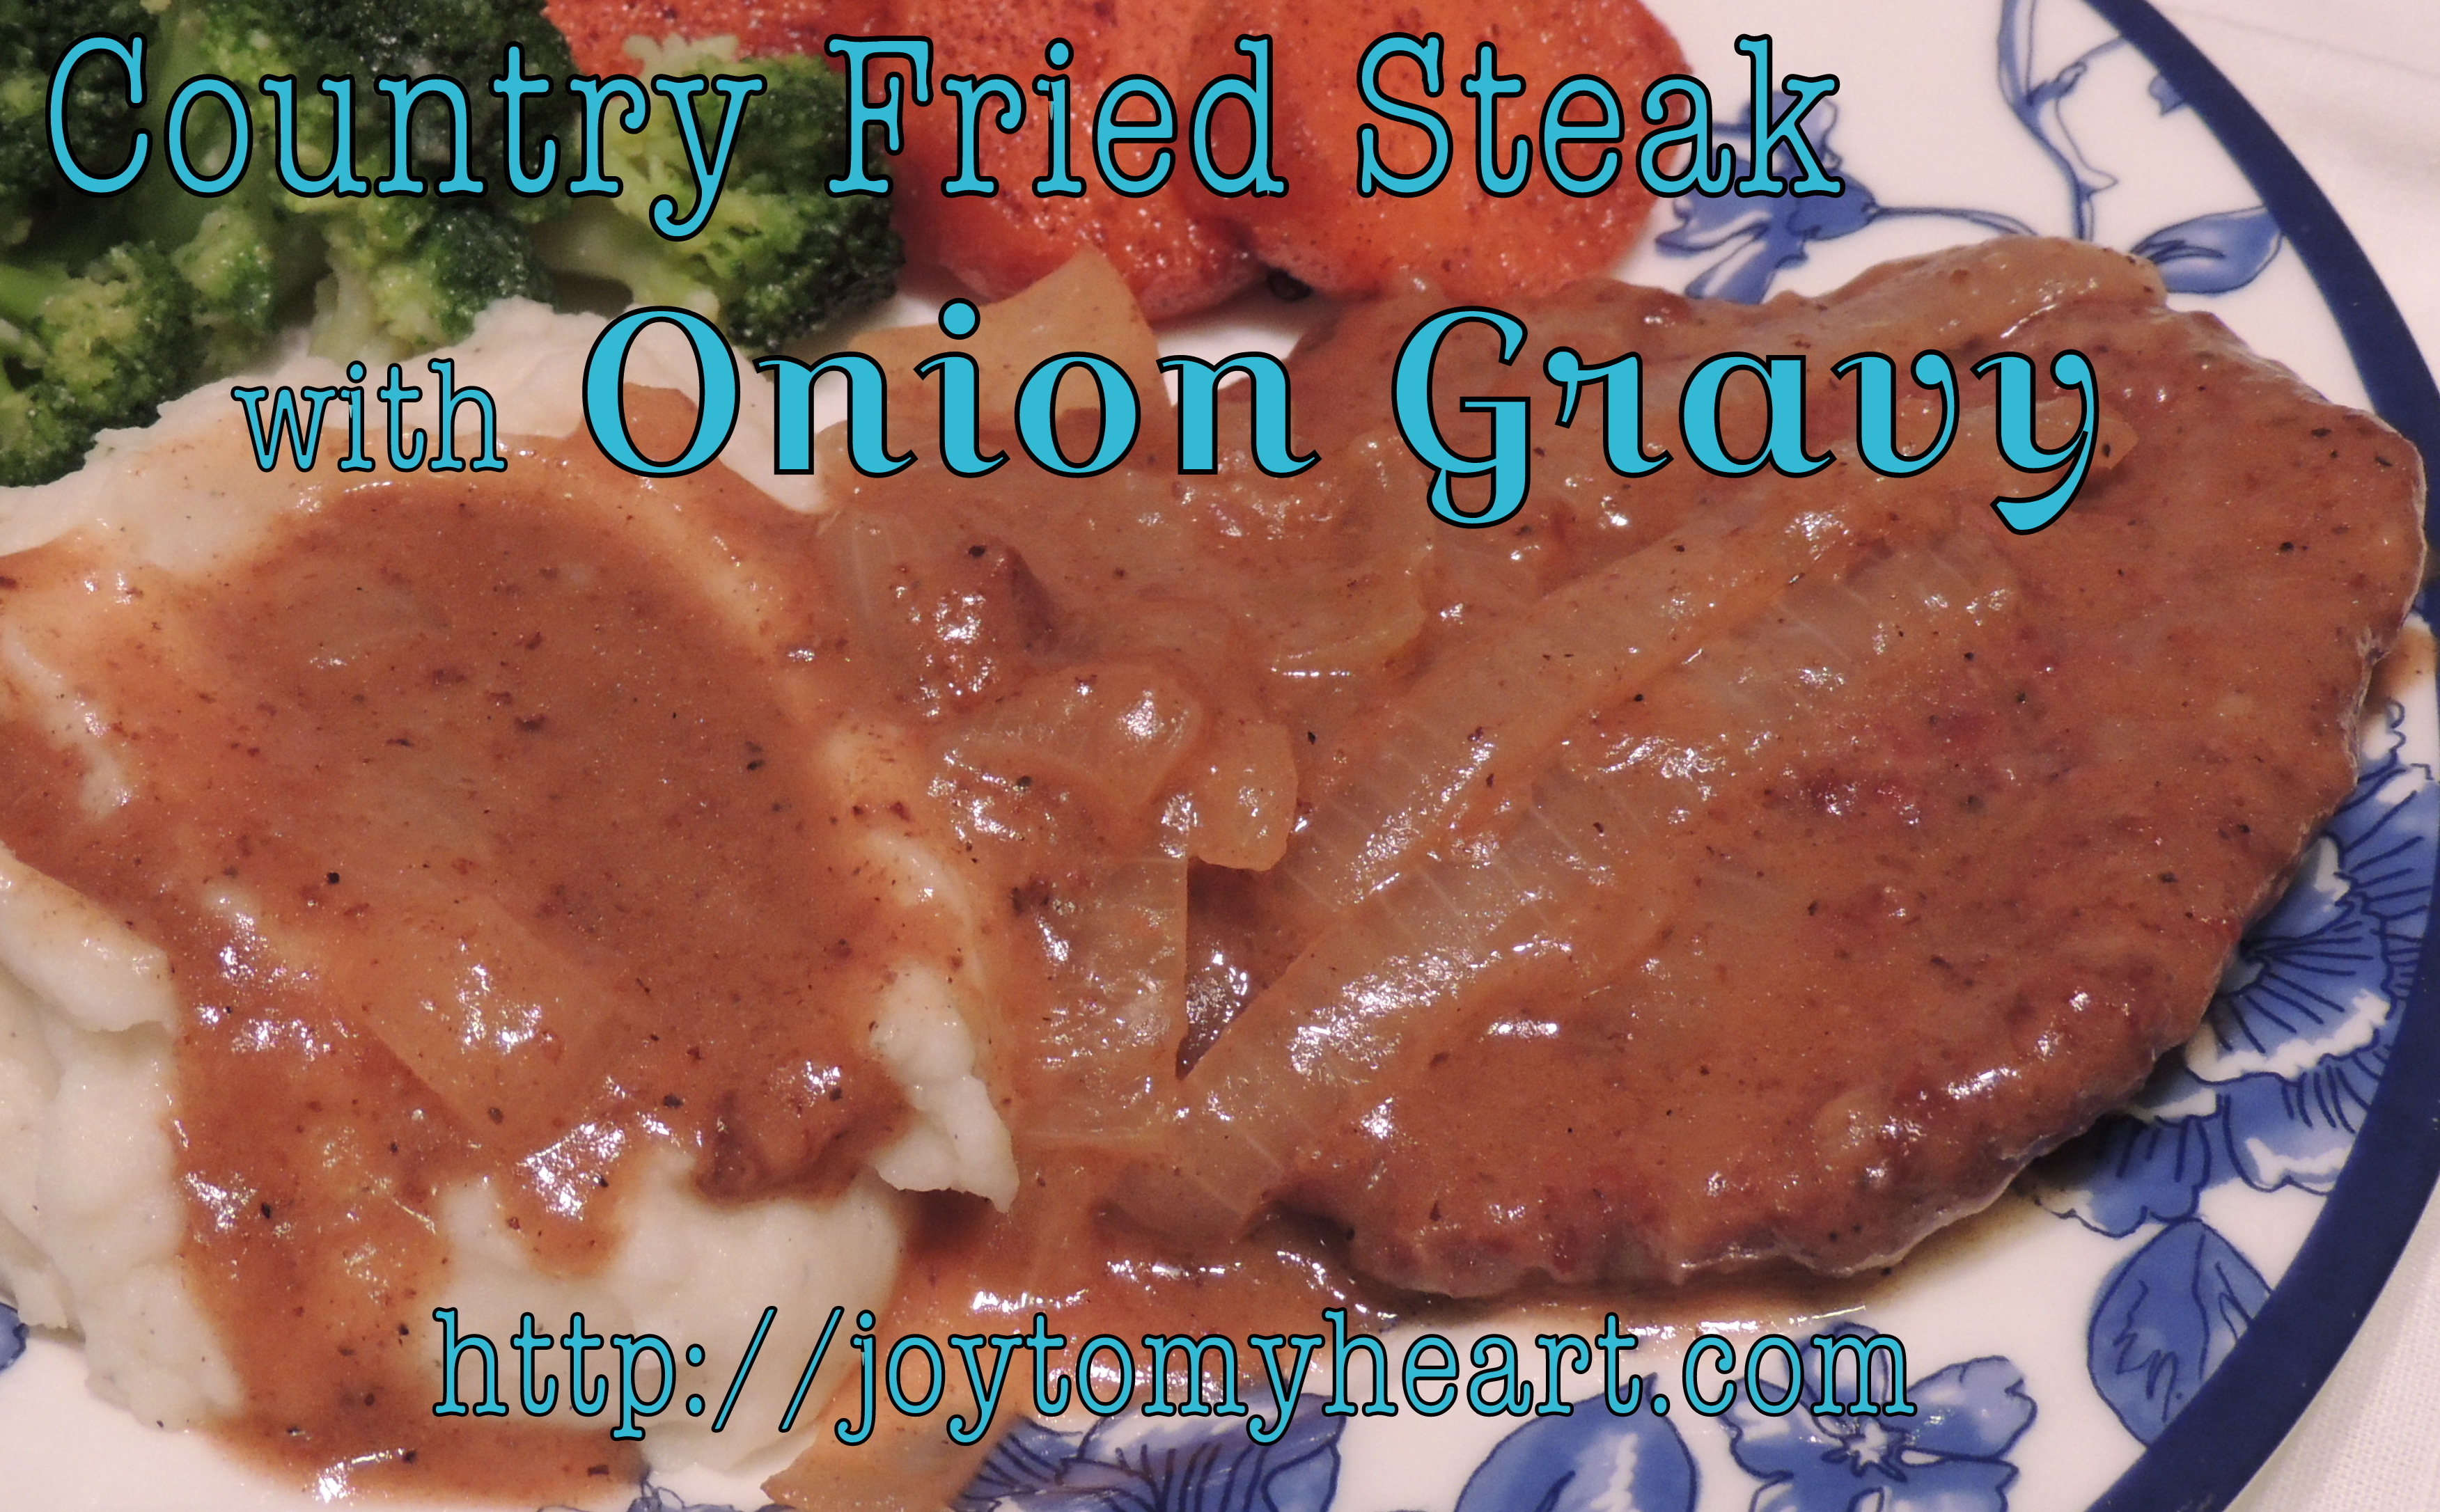 Country Fried Steak with Onion Gravy